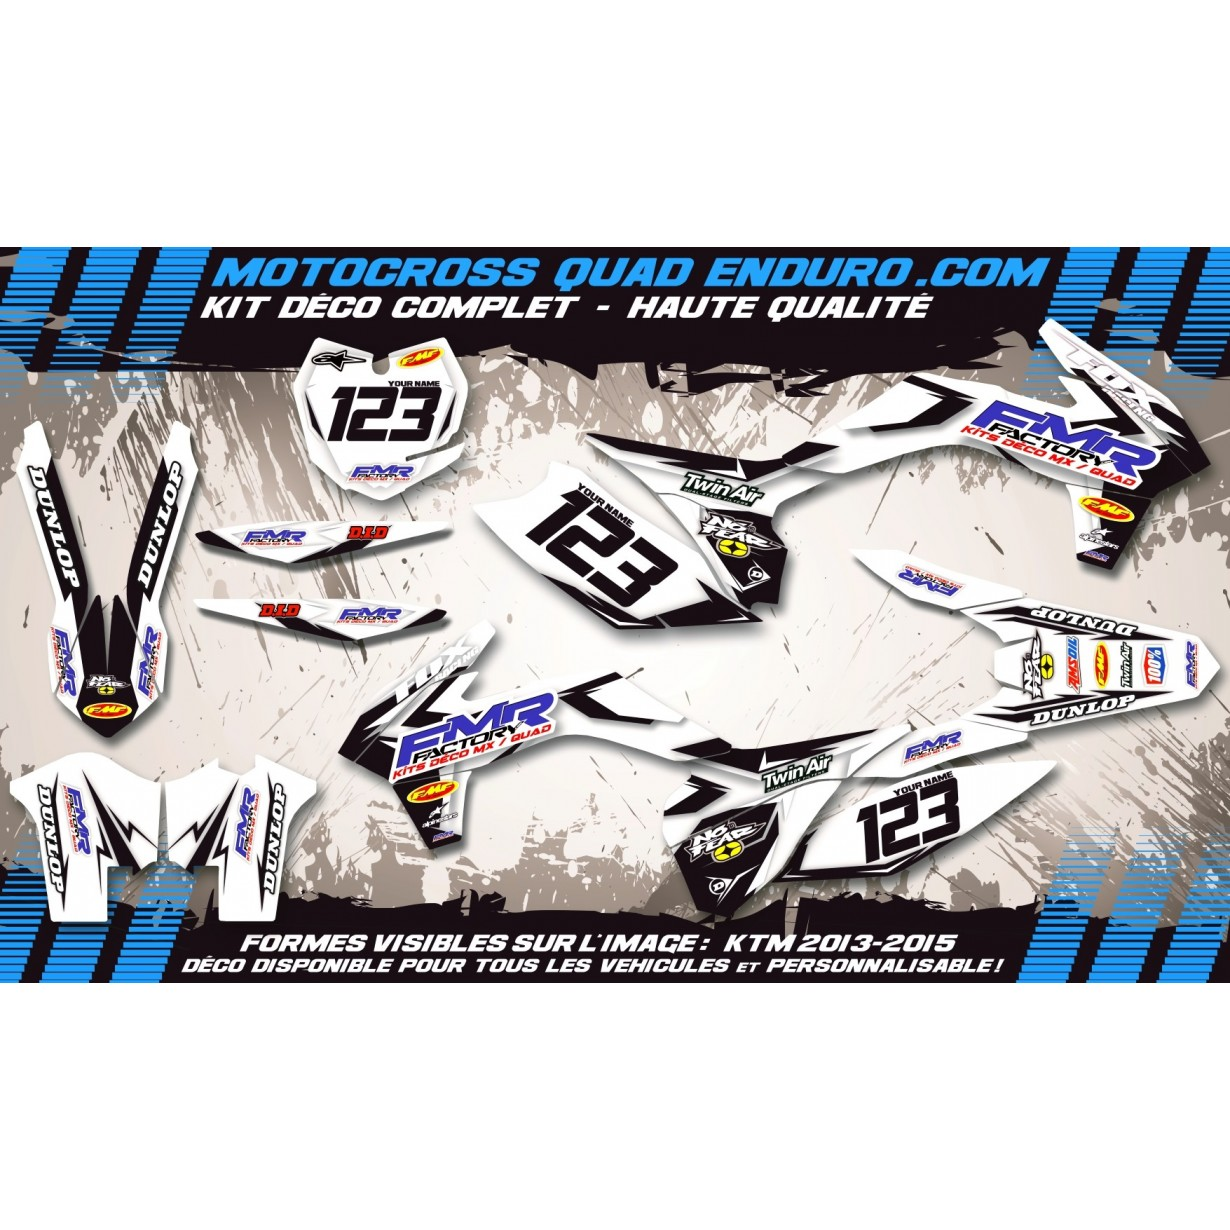 KIT DÉCO Perso 700 RAPTOR 13-16 Quad Fmr factory WT Edition MA13WT